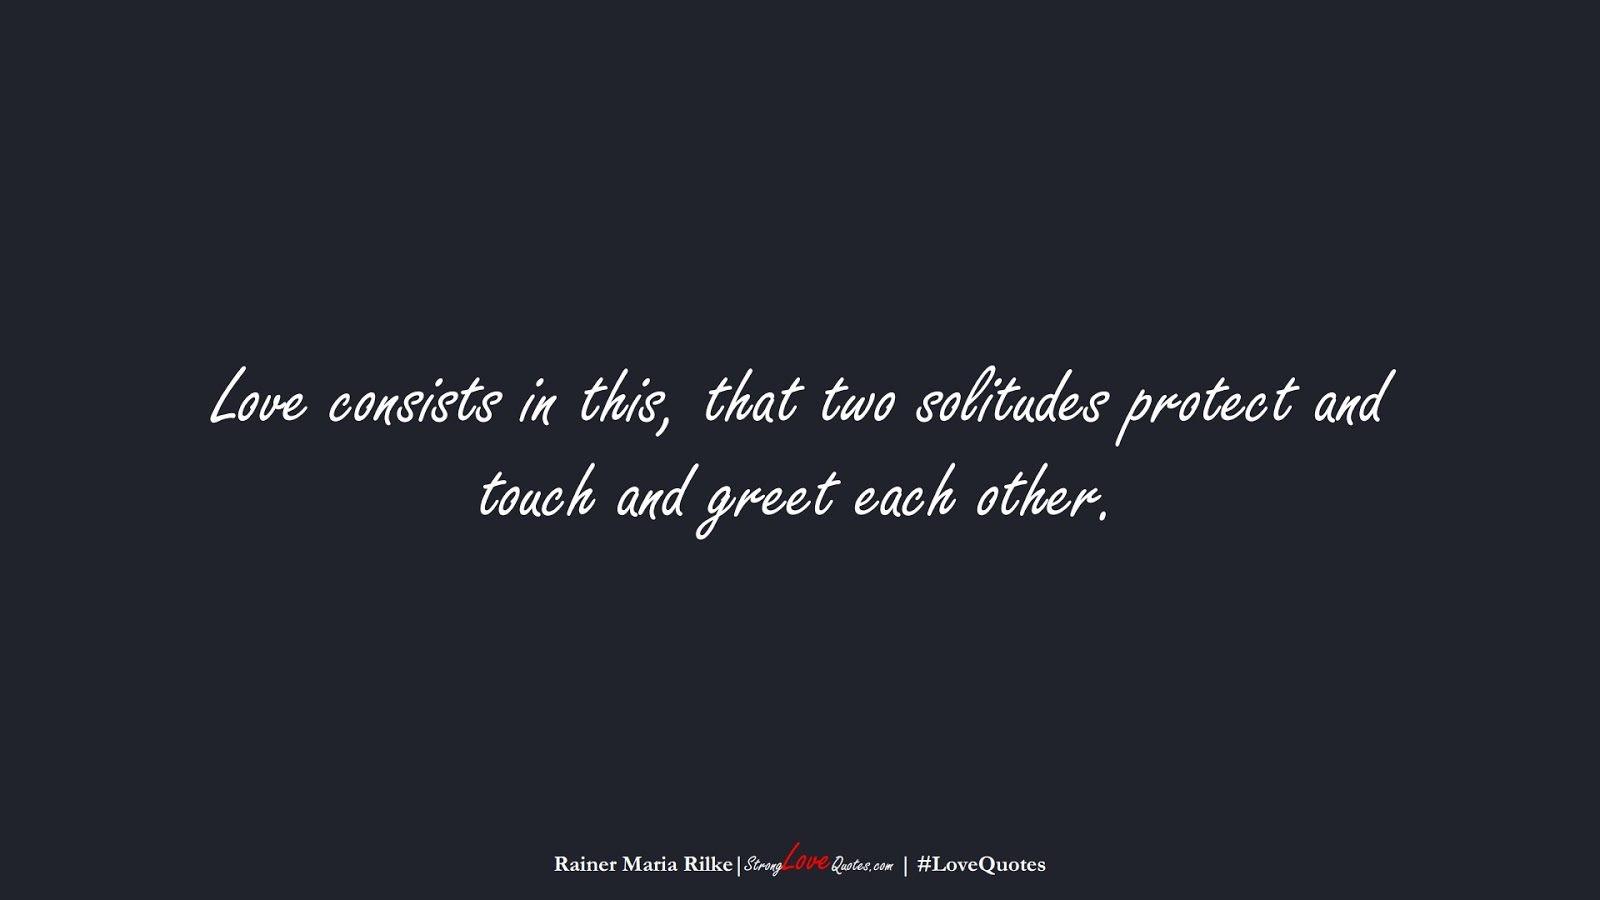 Love consists in this, that two solitudes protect and touch and greet each other. (Rainer Maria Rilke);  #LoveQuotes